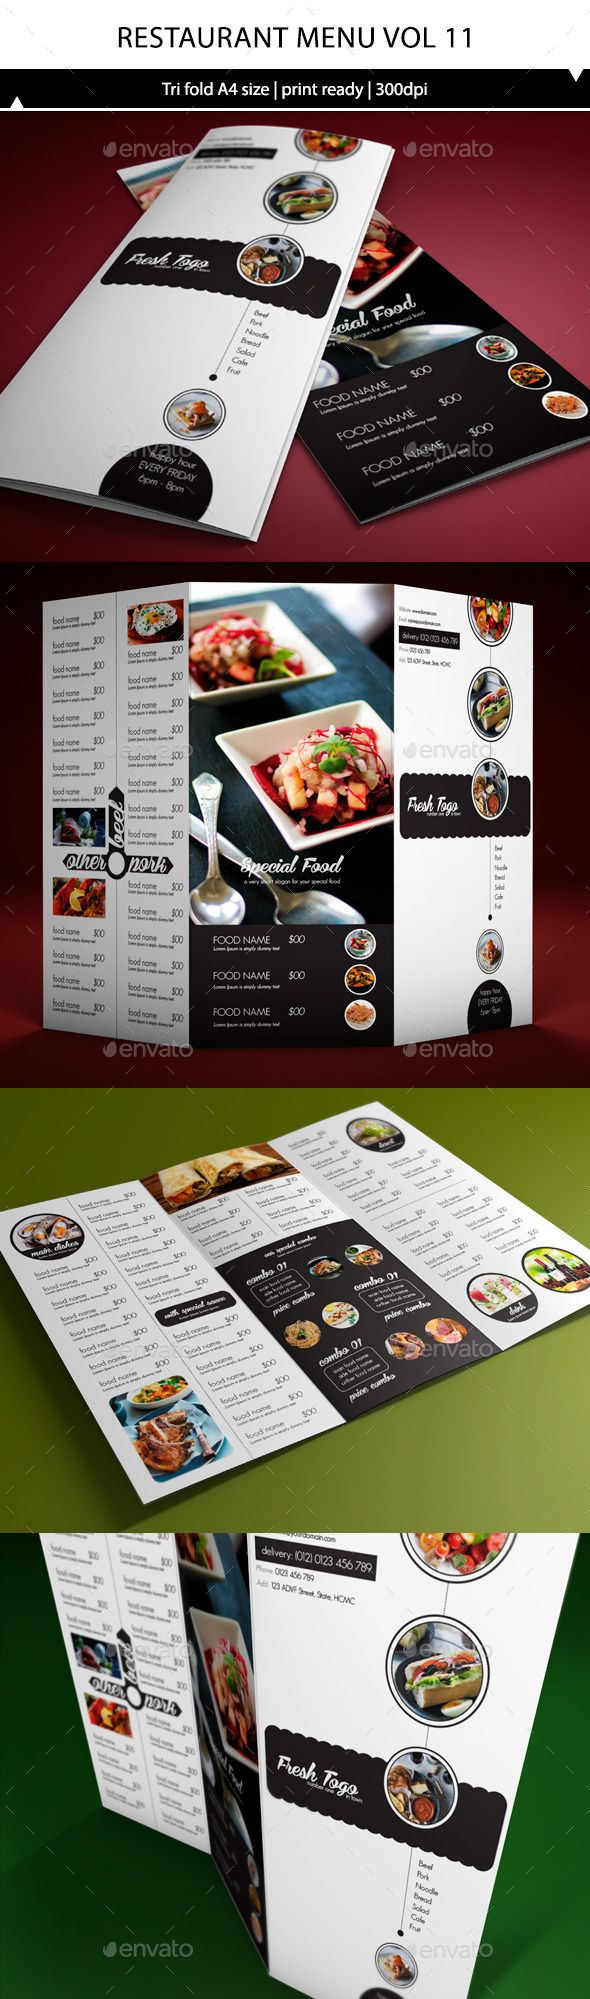 Restaurant Menu A4 Trifold Template #design Download: http://graphicriver.net/item/restaurant-menu-a4-trifold-vol11/10357063?ref=ksioks